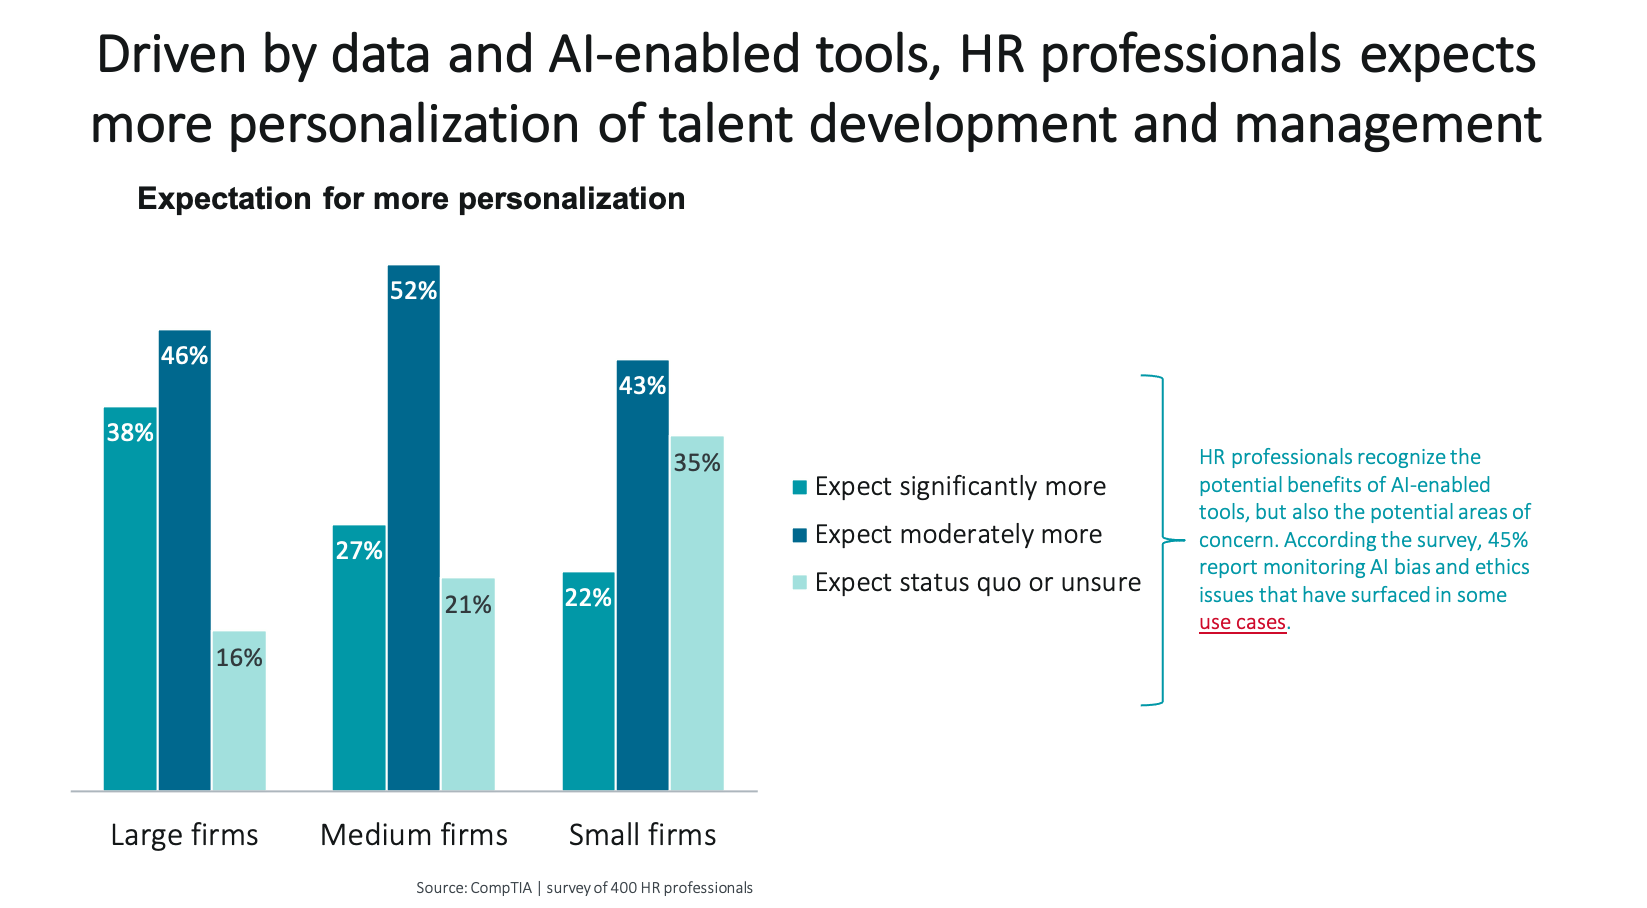 Driven by data and AI-enabled tools, HR professional expects more personalization of talent development and mangement